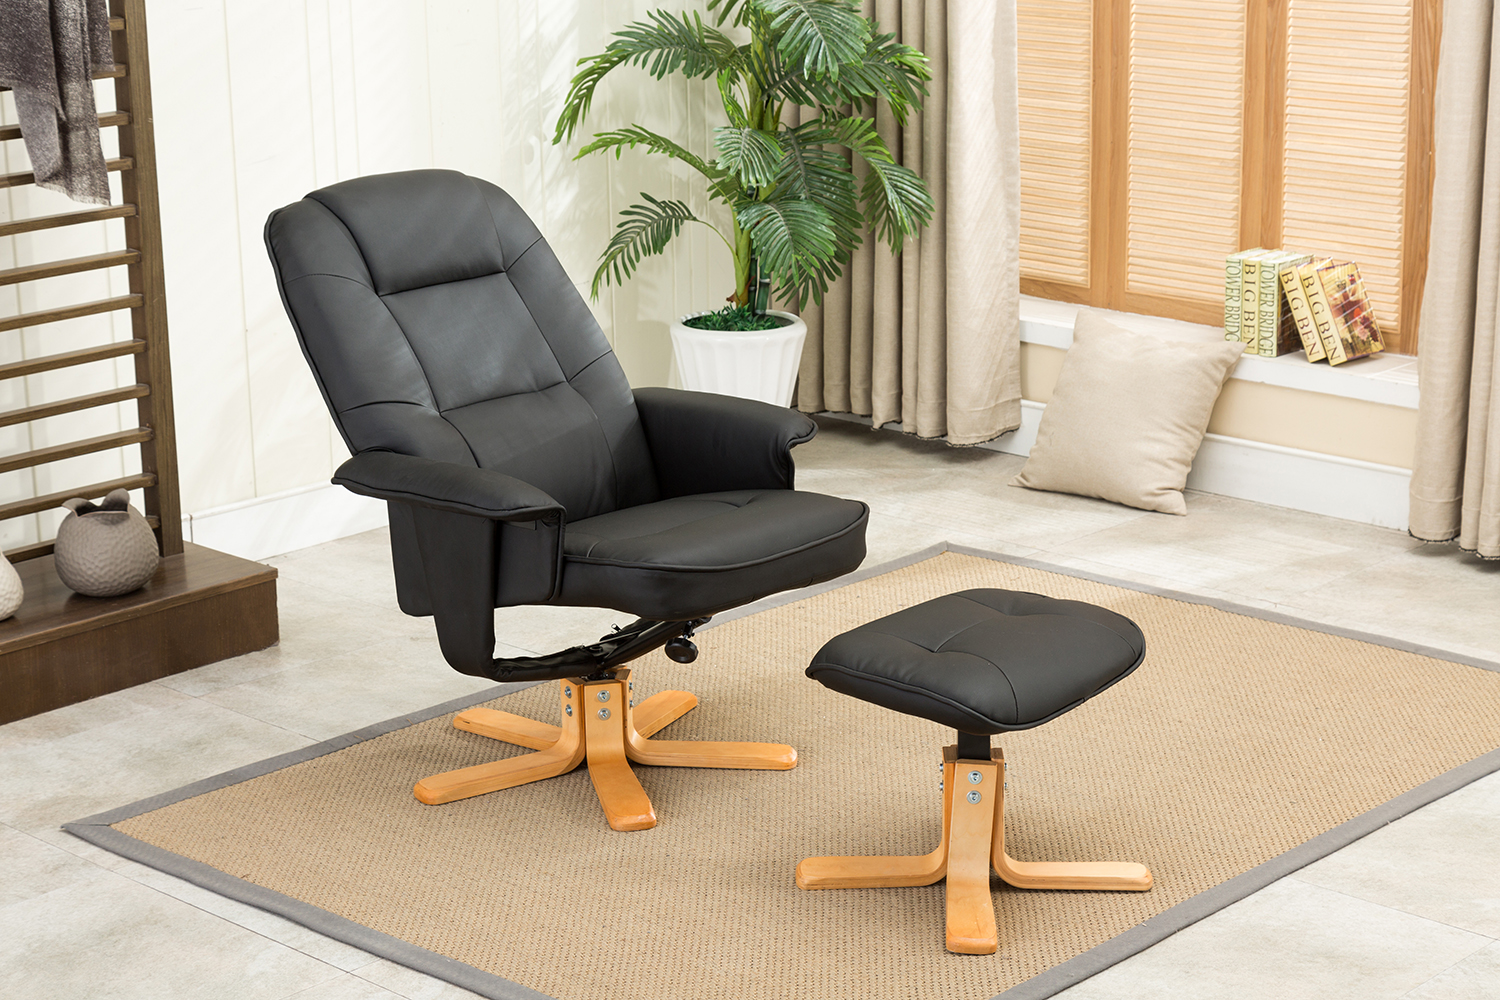 Couchtisch über Hocker Mcombo Racing Sessel Gaming Sessel Relaxsessel